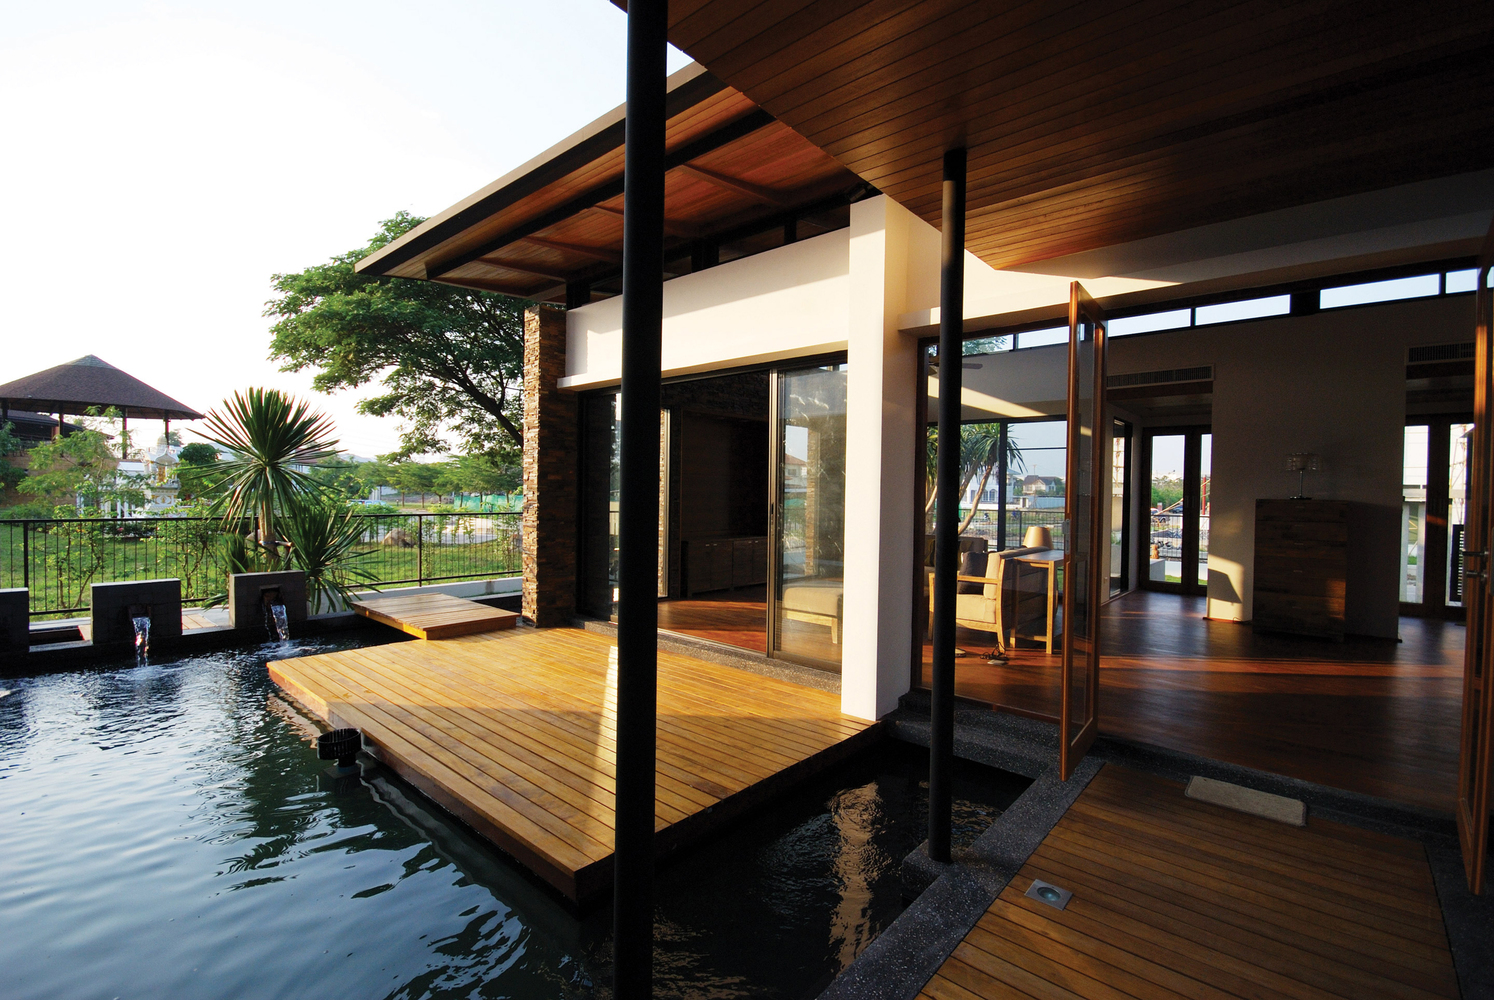 Feng Shui Home Design feng shui house feels like it's floating | designs & ideas